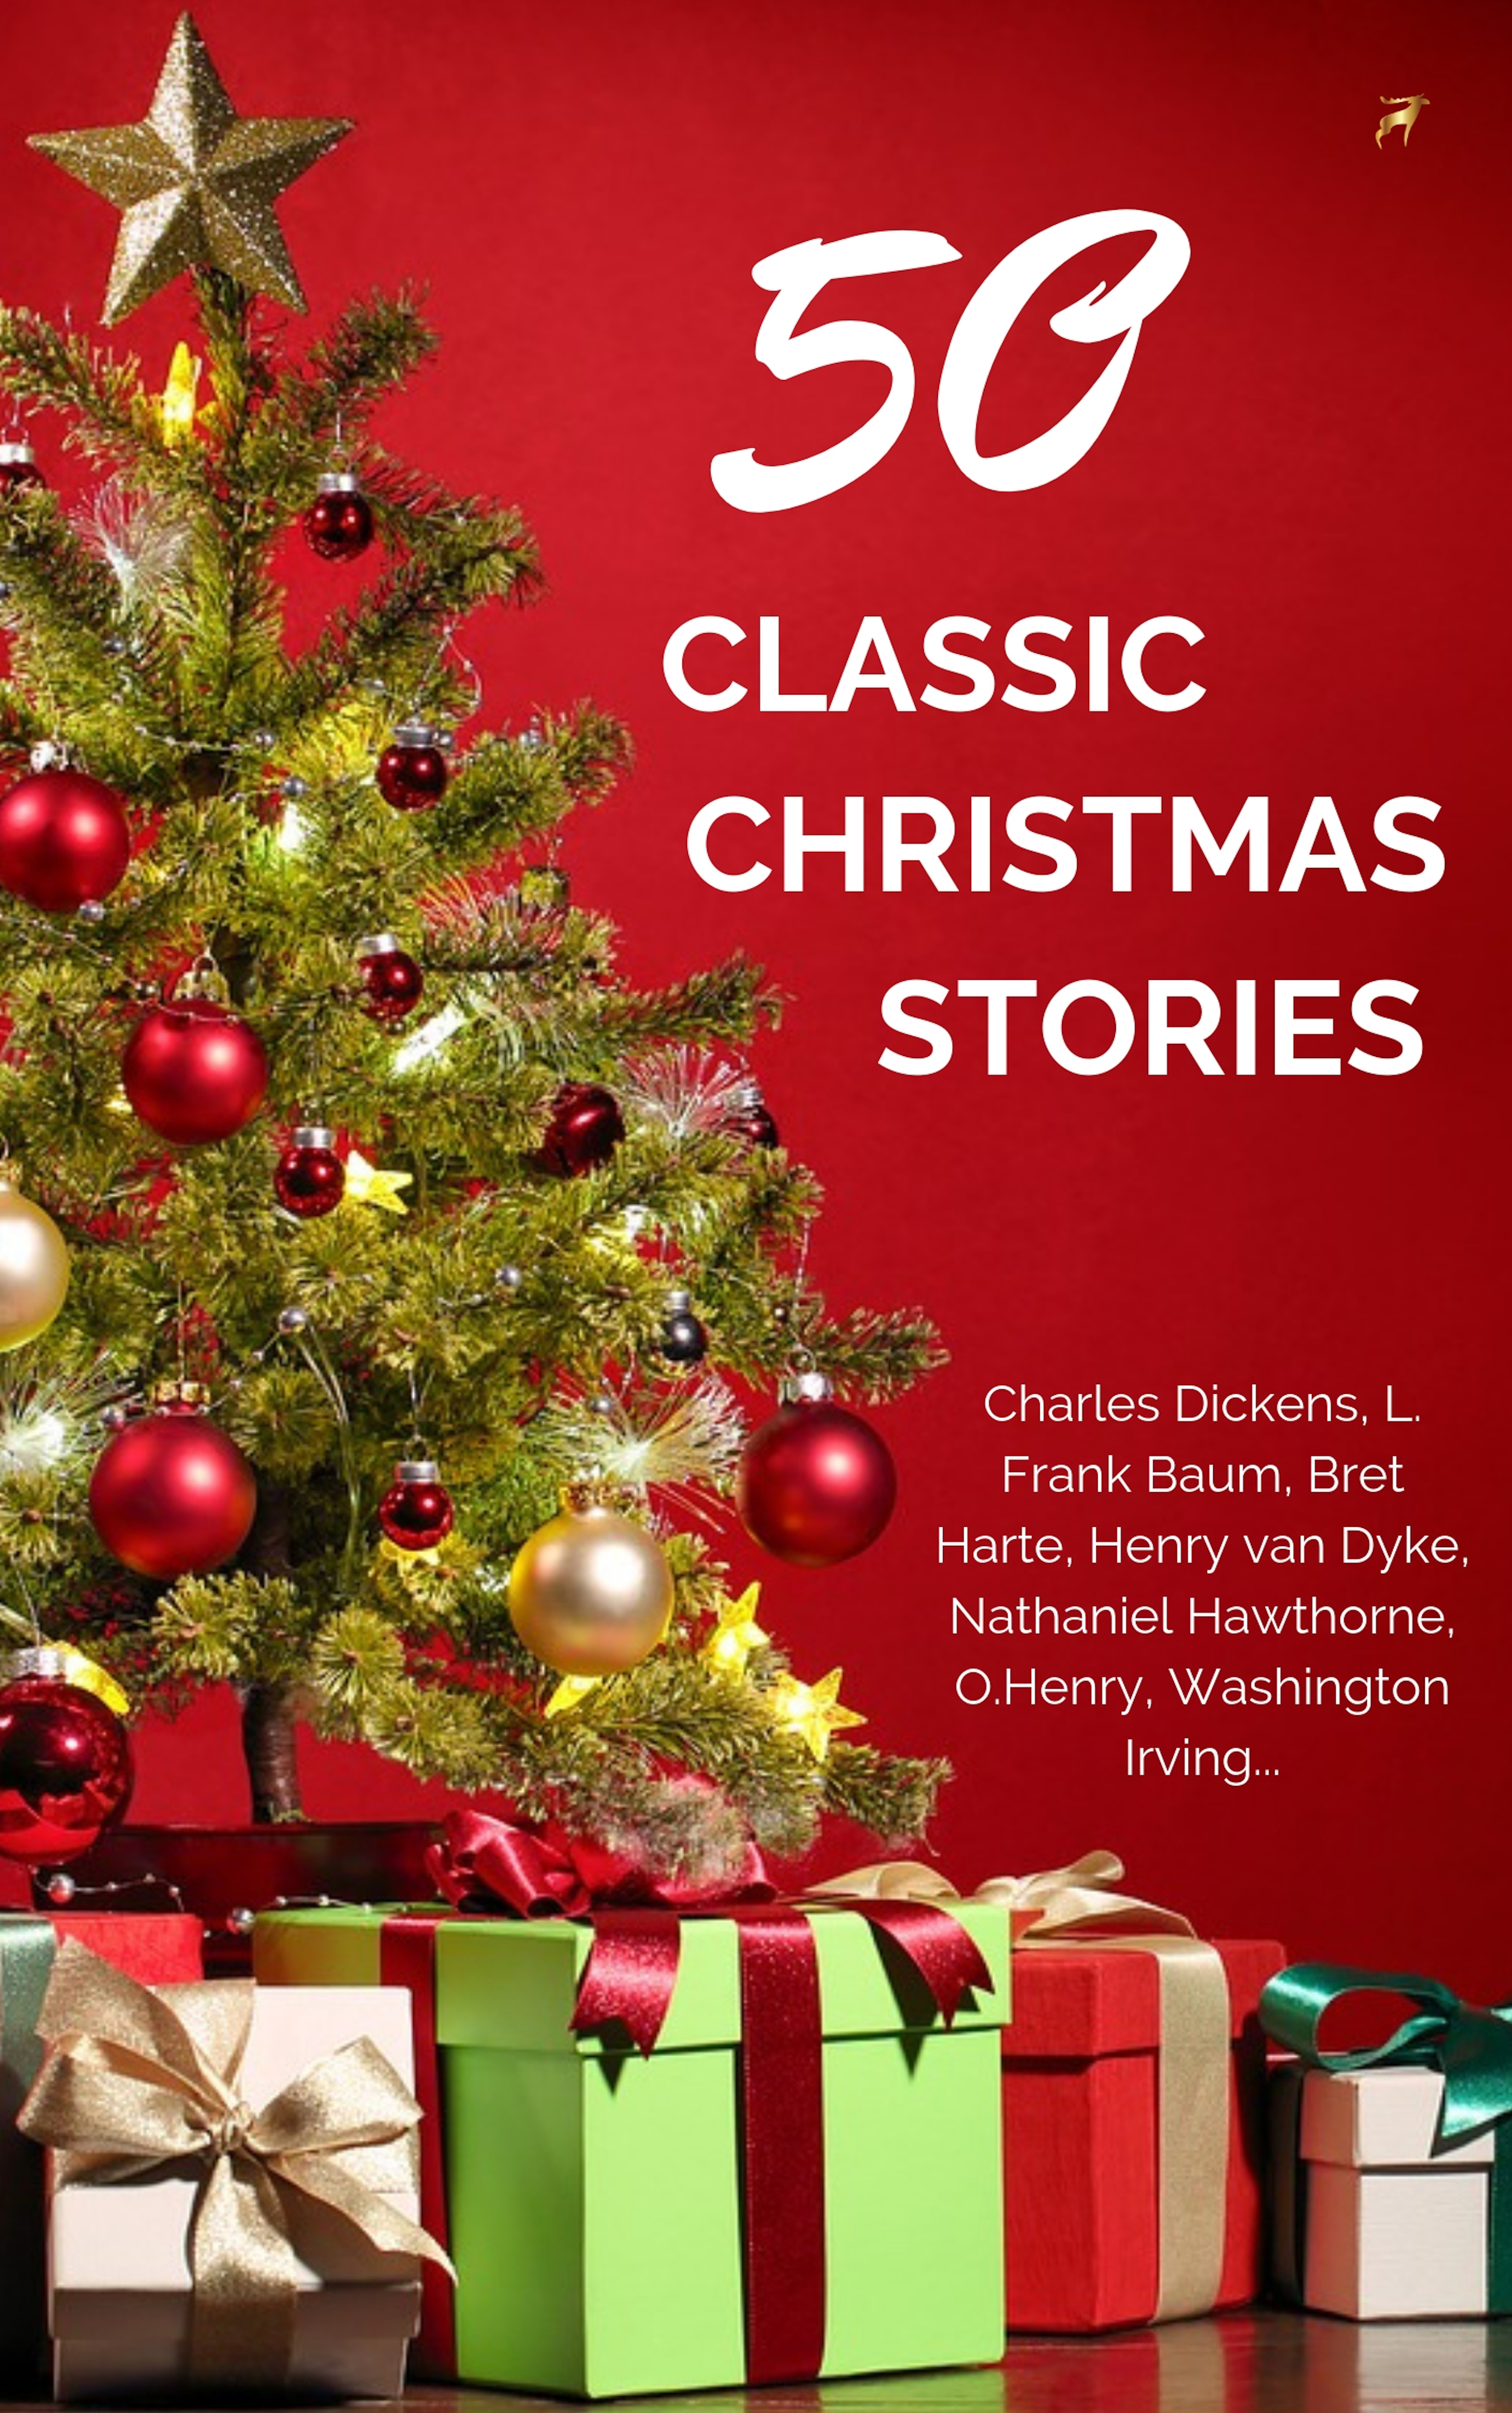 Classic Christmas Stories: A Collection of Timeless Holiday Tales